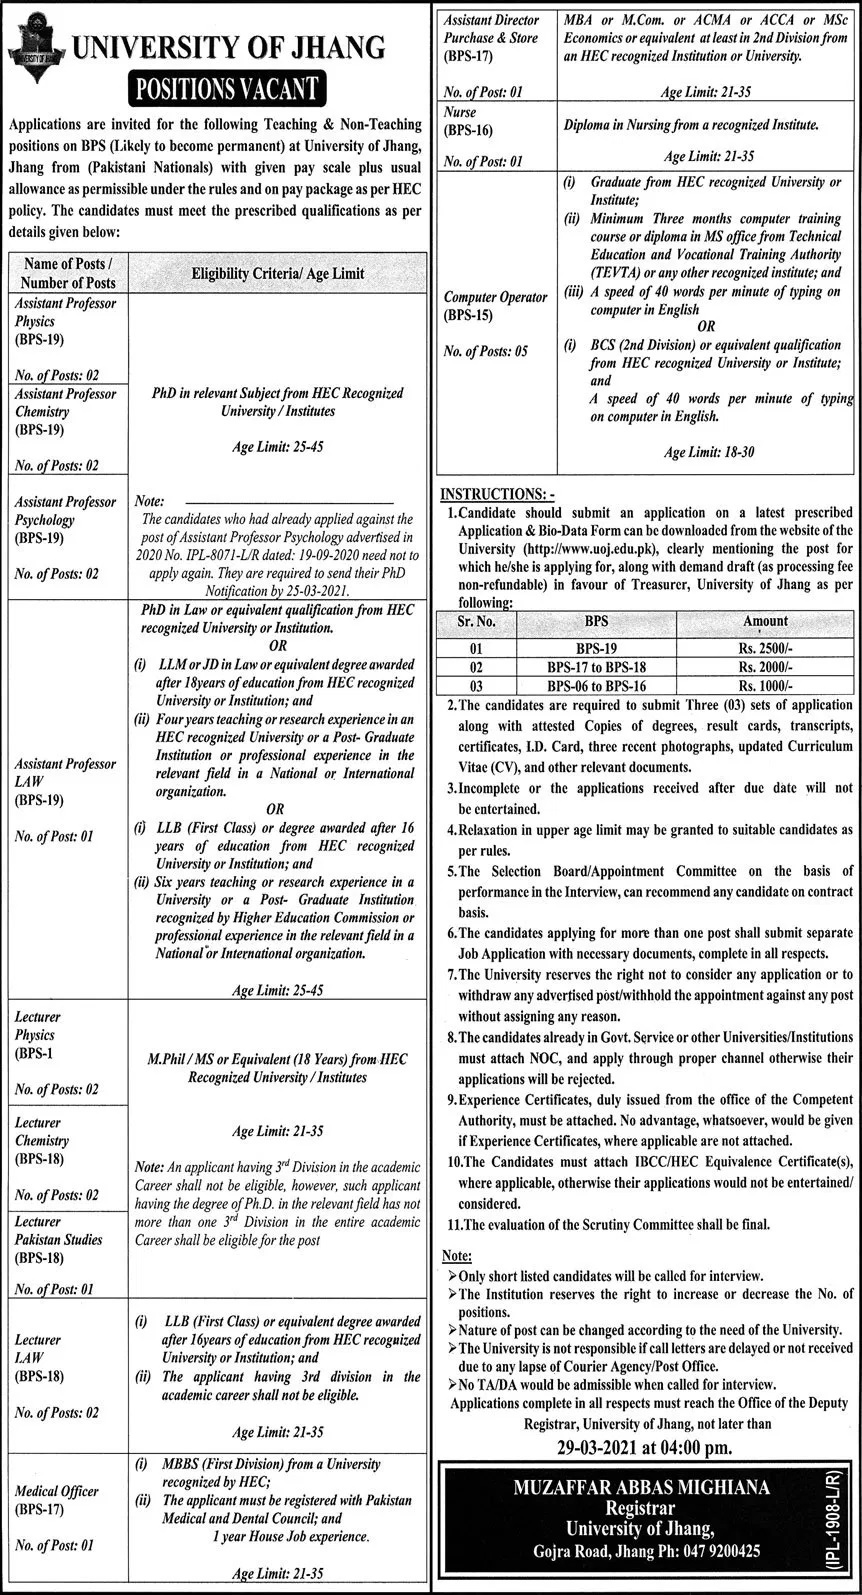 University of Jhang UOJ Jobs